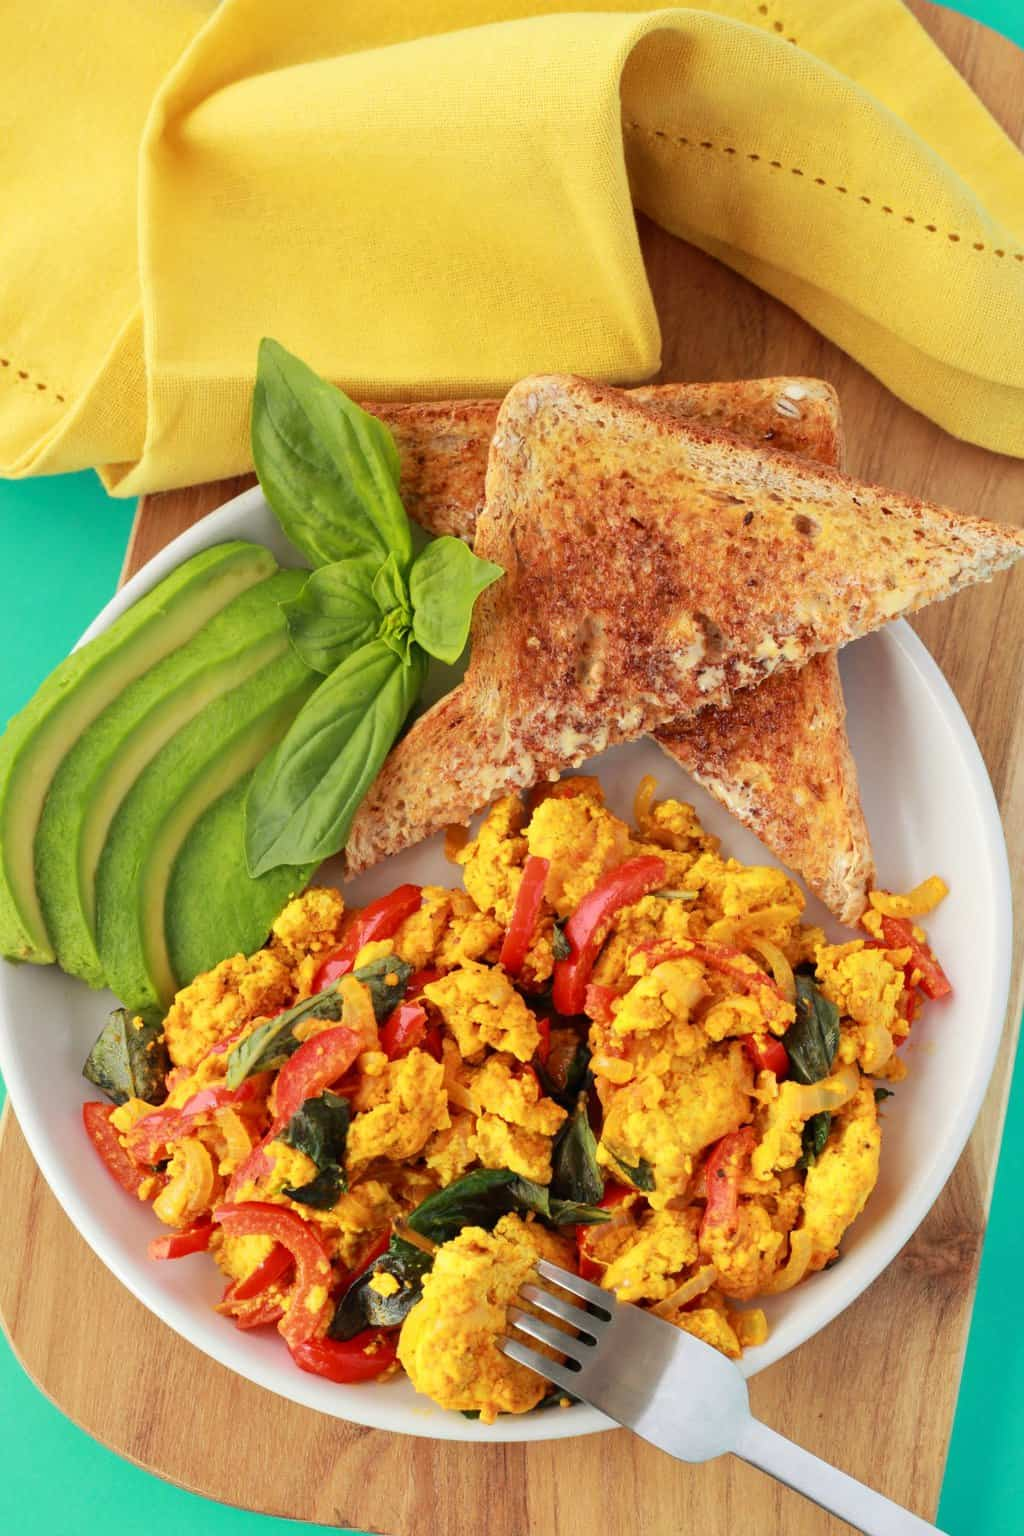 Tofu Scramble on a white plate with toast triangles, fresh basil and sliced avocado, a yellow napkin in the background.